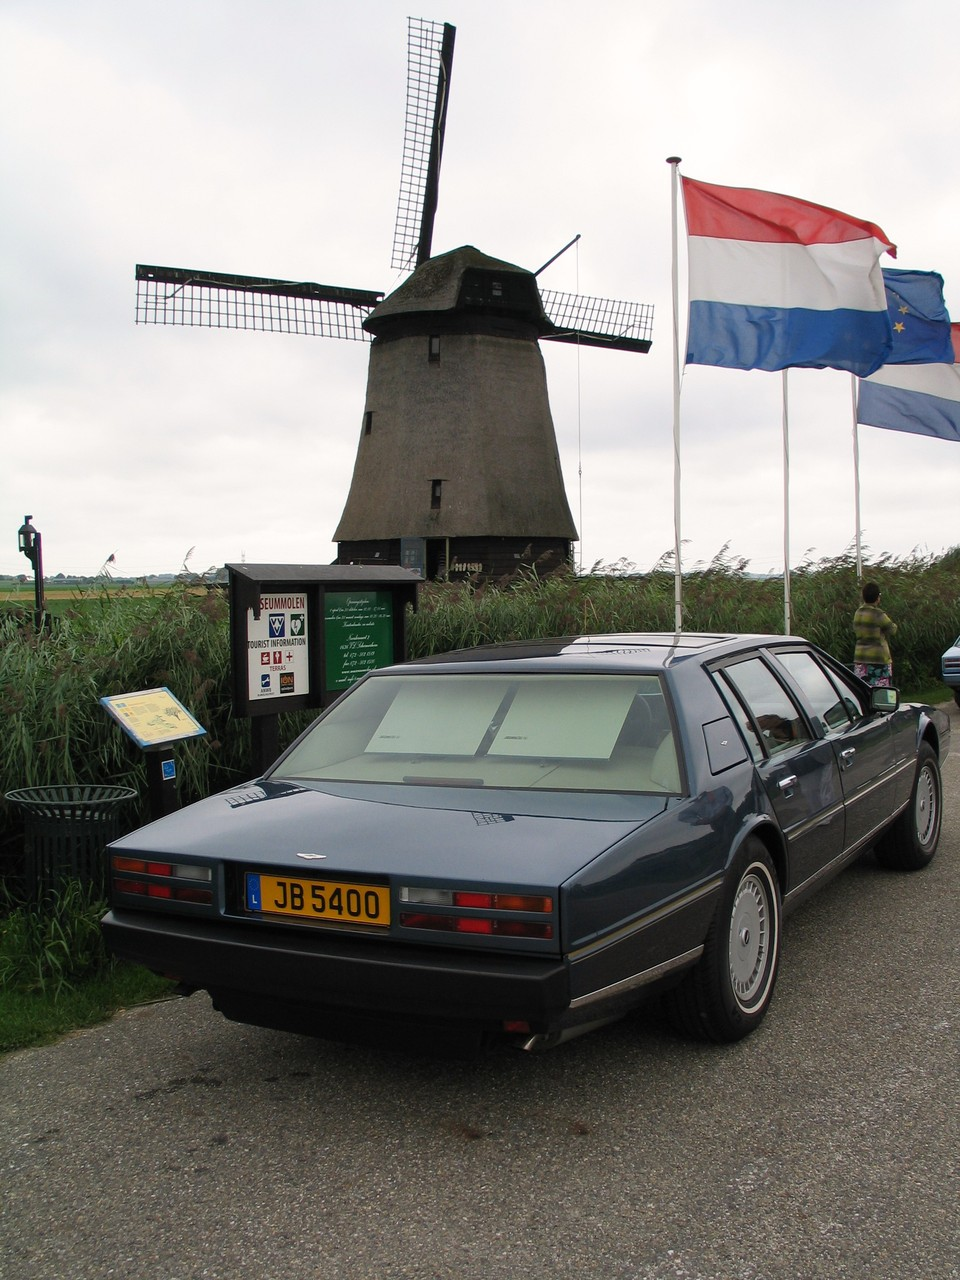 2010 LagondaFest in the Netherlands